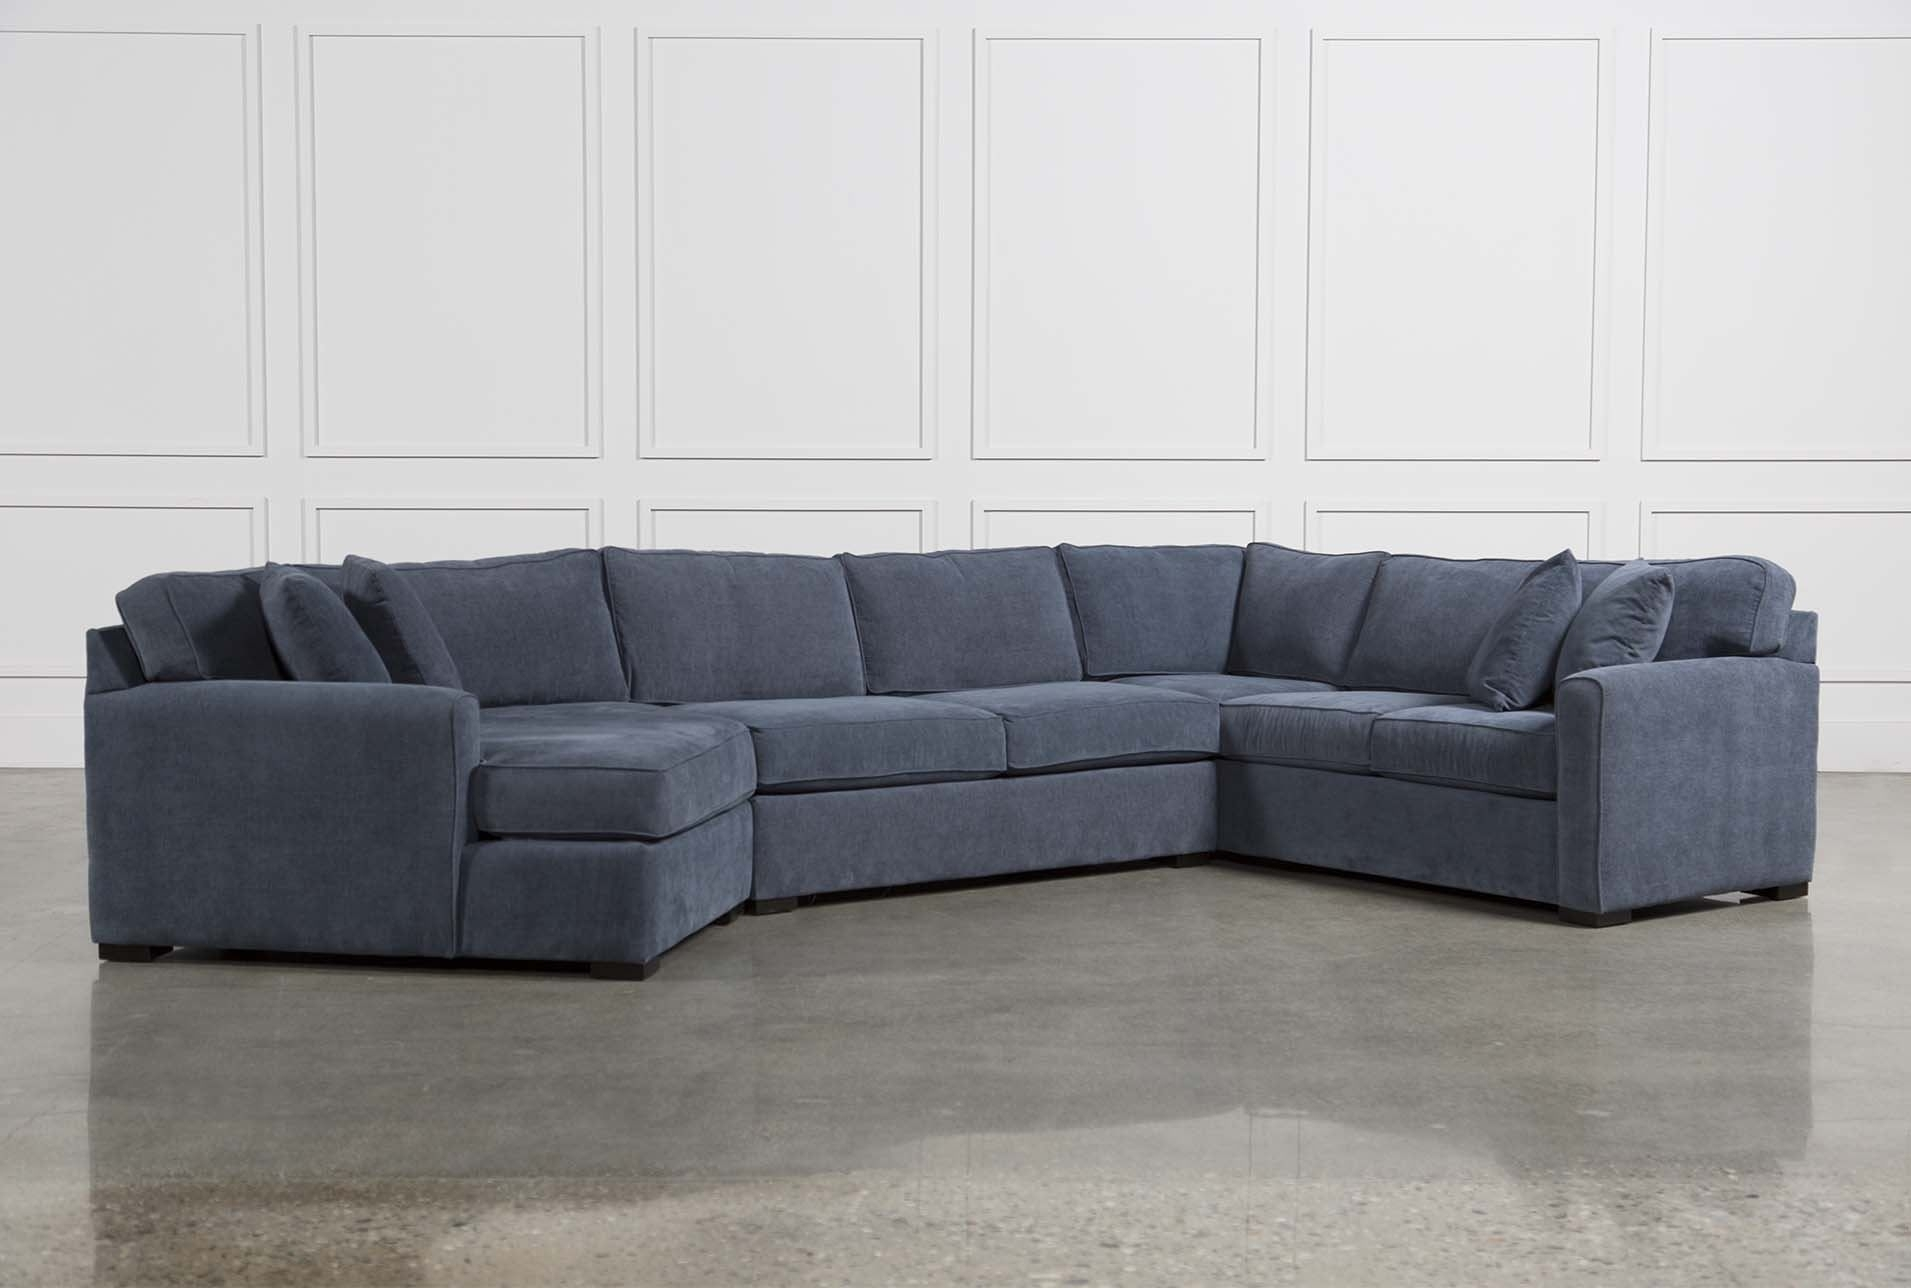 Cypress 3 Piece Sectional | Final Choices | Pinterest | Living Inside Glamour Ii 3 Piece Sectionals (Image 9 of 25)